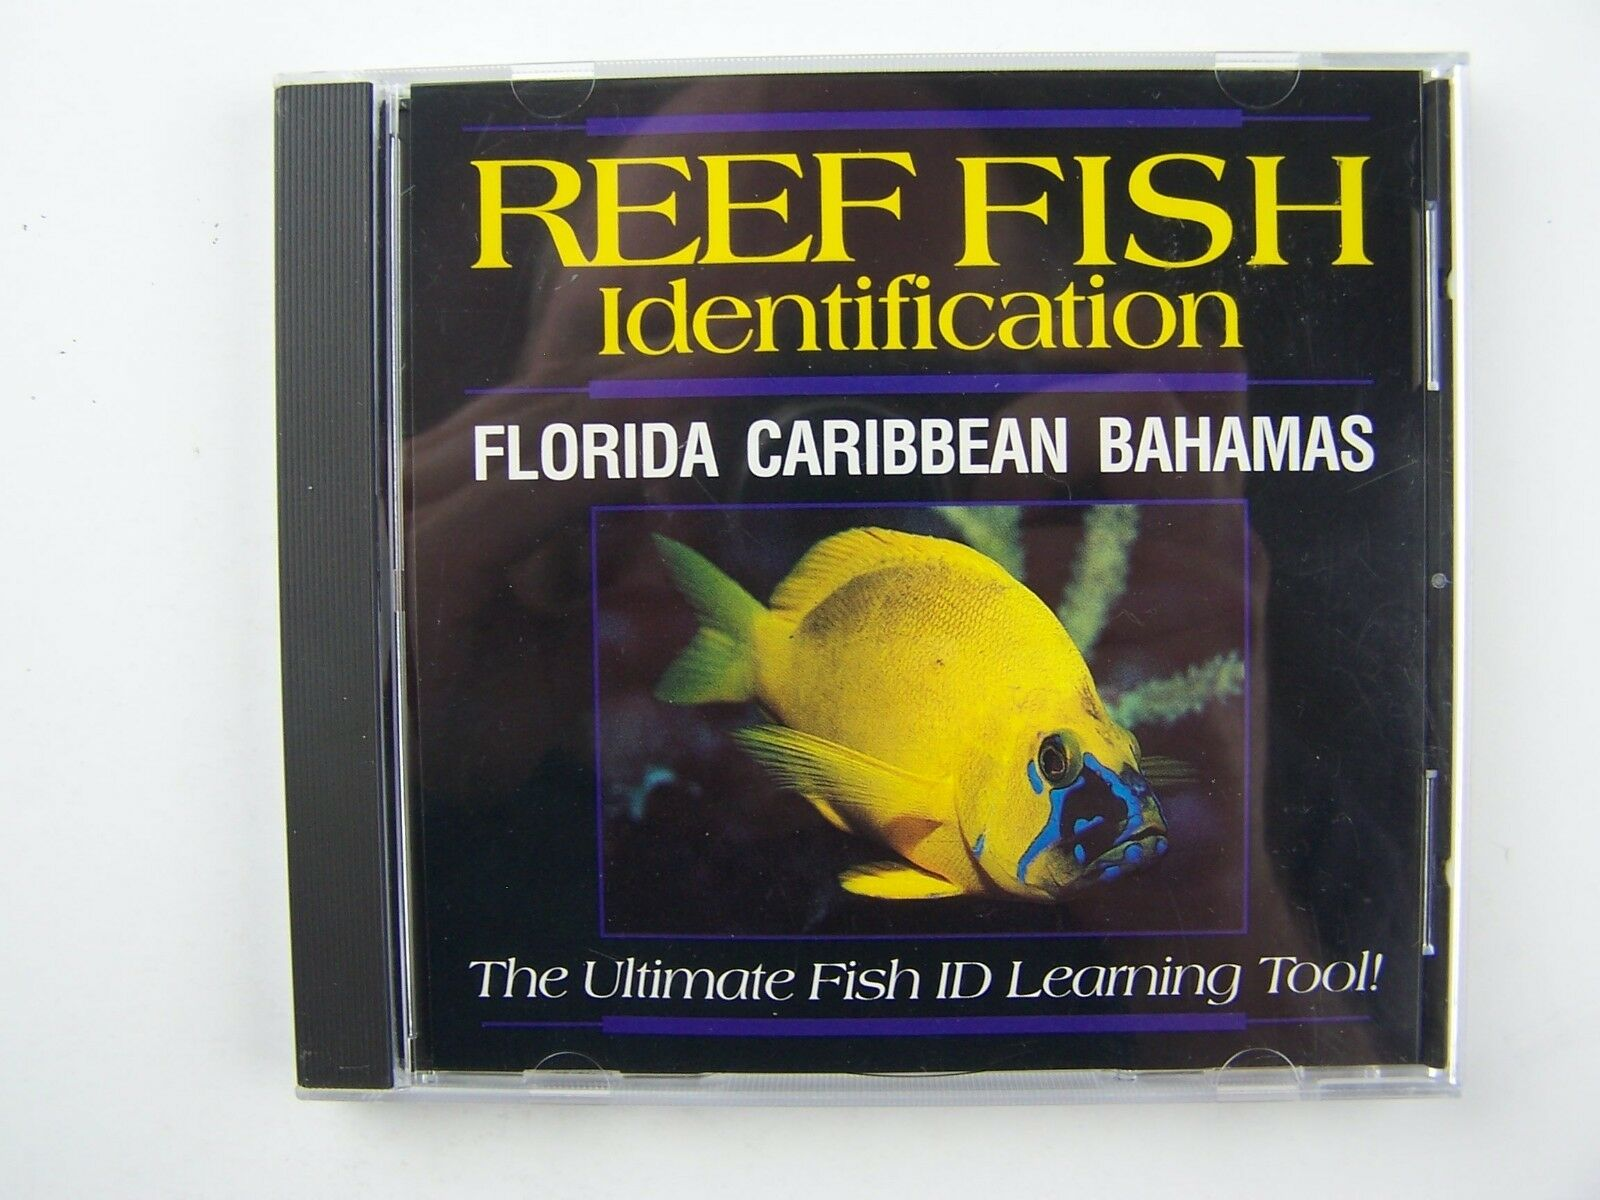 Reef Fish Identification - Florida Caribbean Bahamas CD